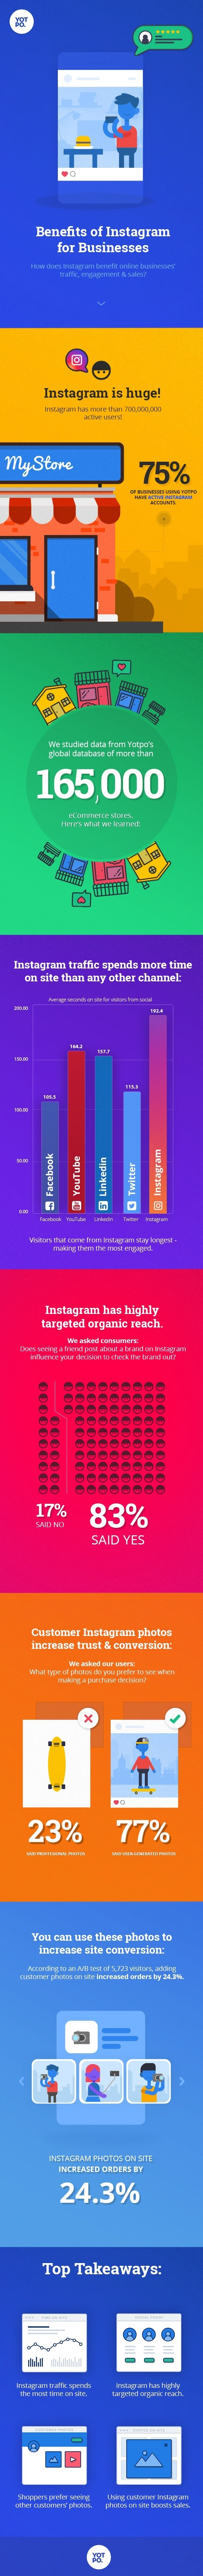 Benefits of Instagram for Businesses - #Infographic